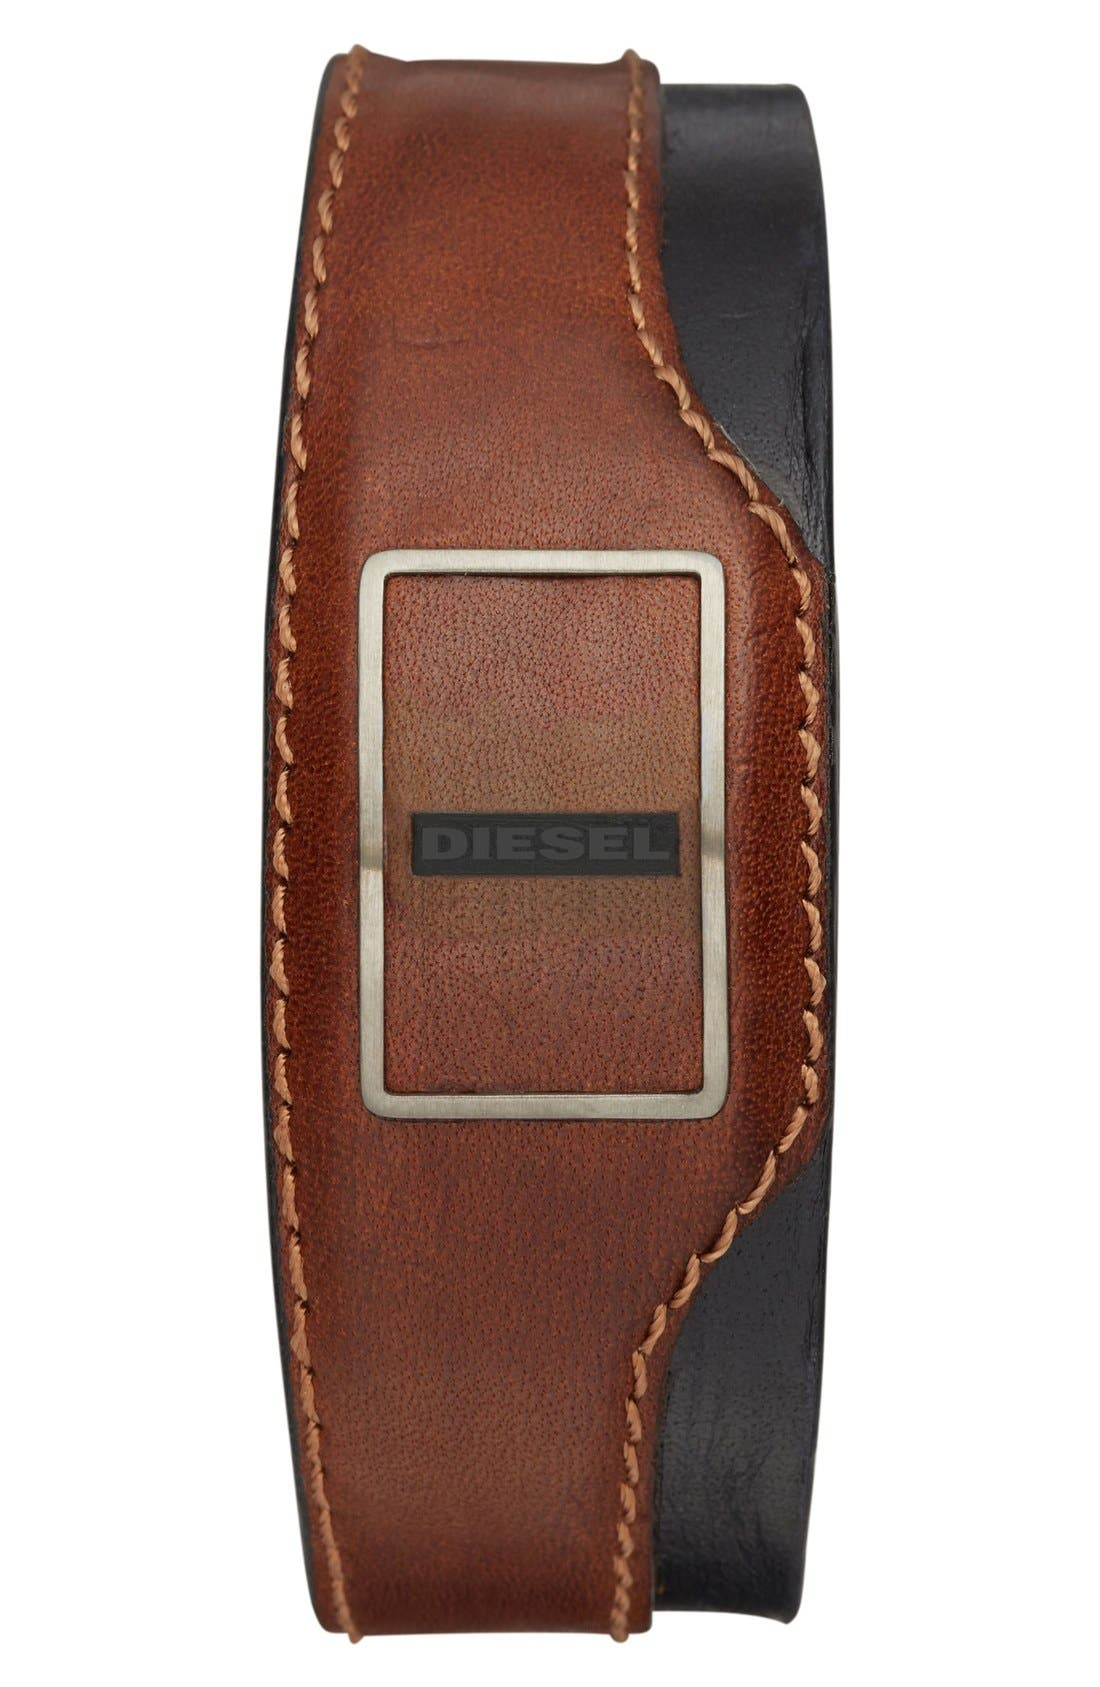 Leather Cuff Activity Tracker,                         Main,                         color, Brown